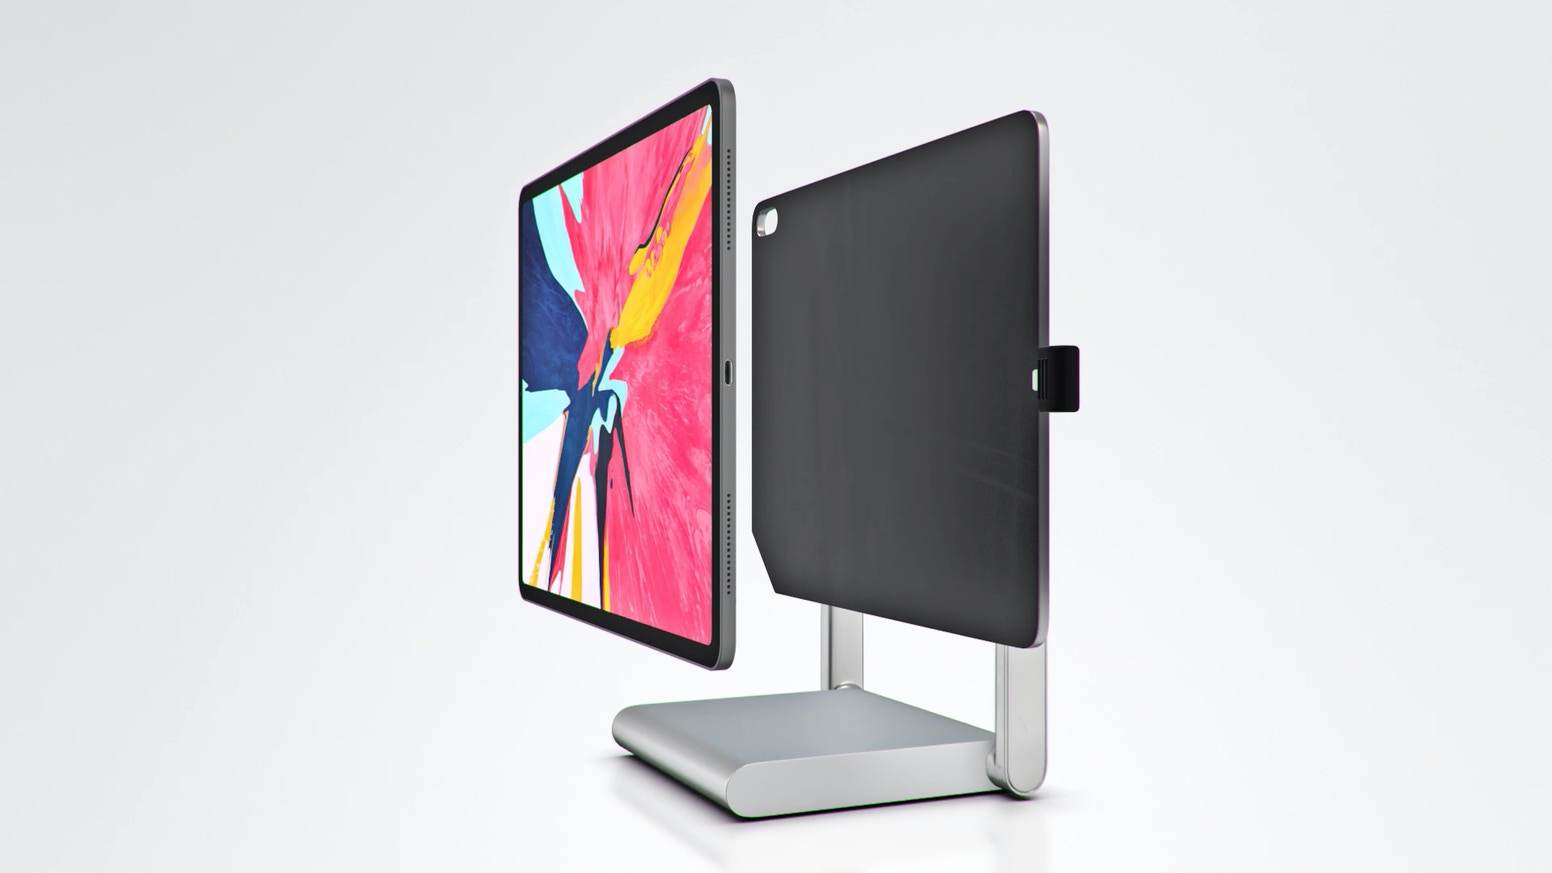 The world's first desktop docking station designed for iPad Pro.  Easily switch between office, design, or illustration work in a snap.